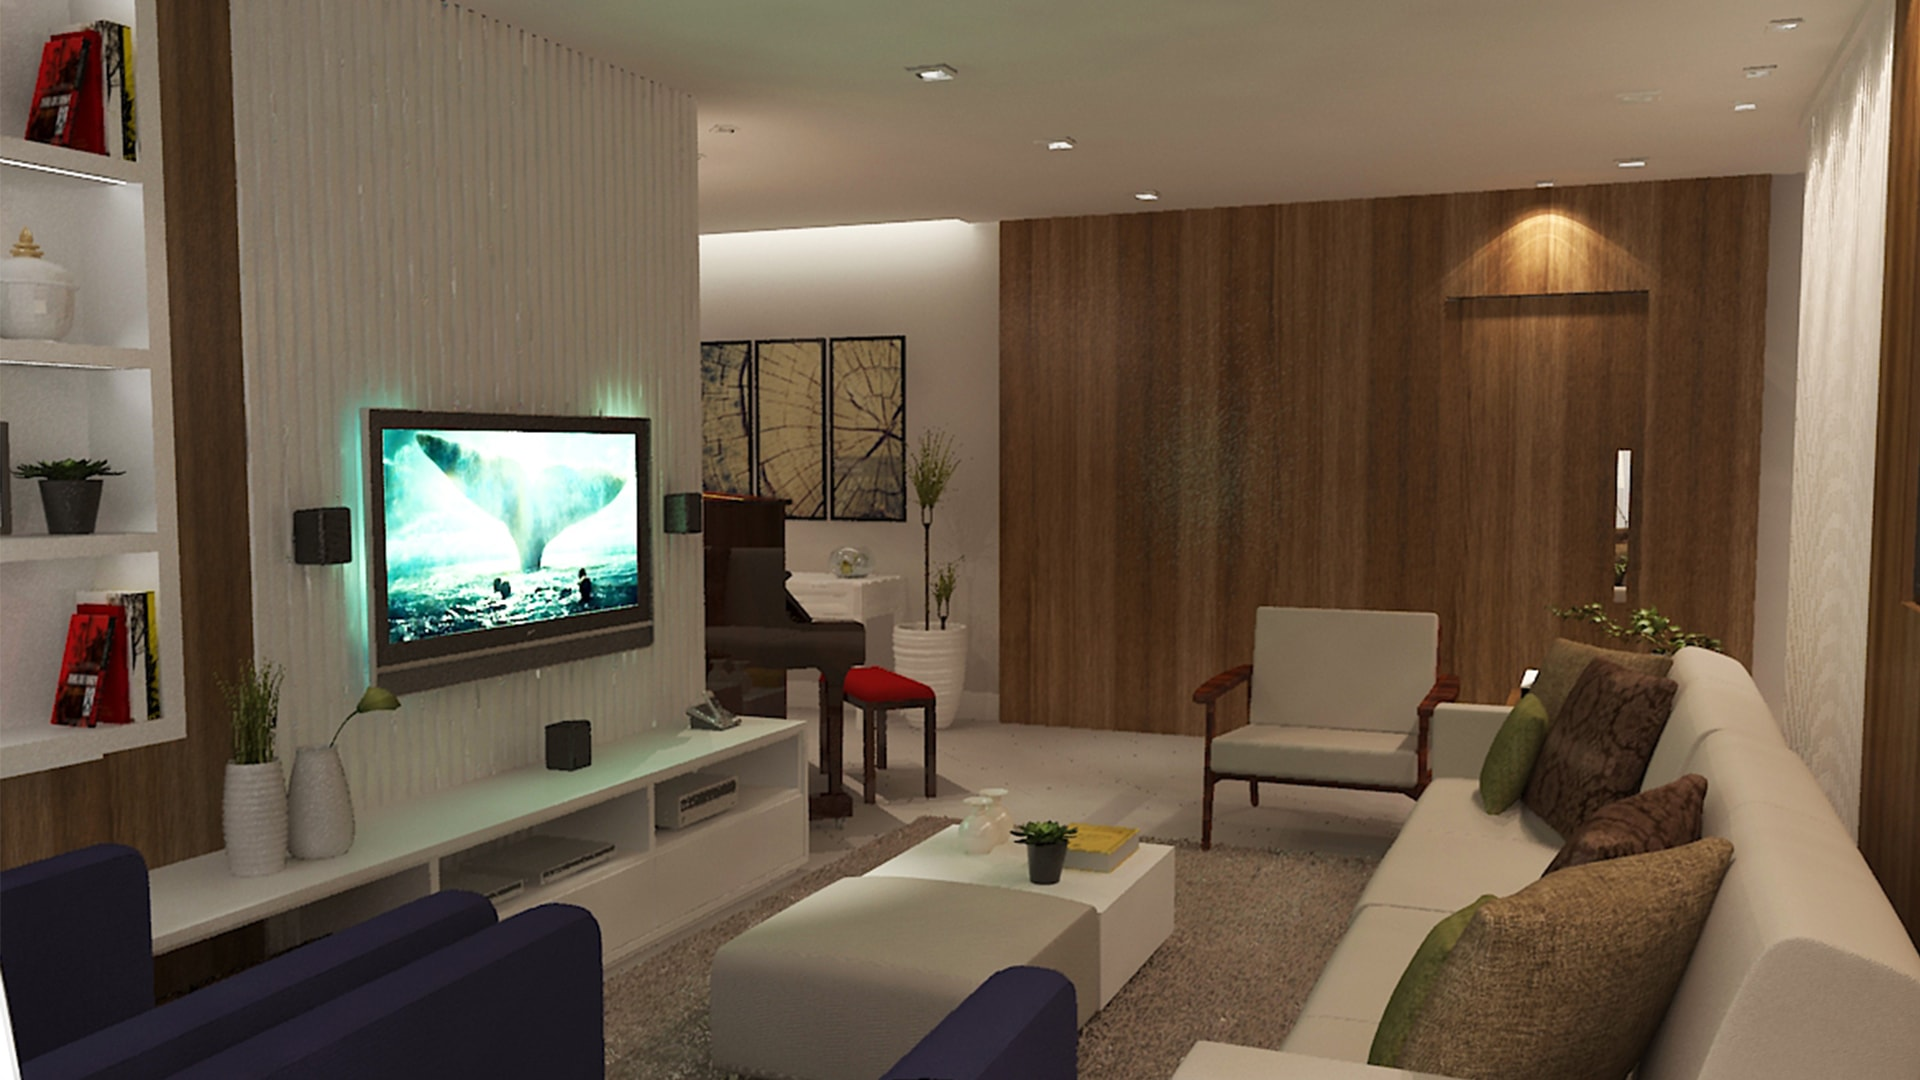 Residencial - 55m² - Itapevi - SP